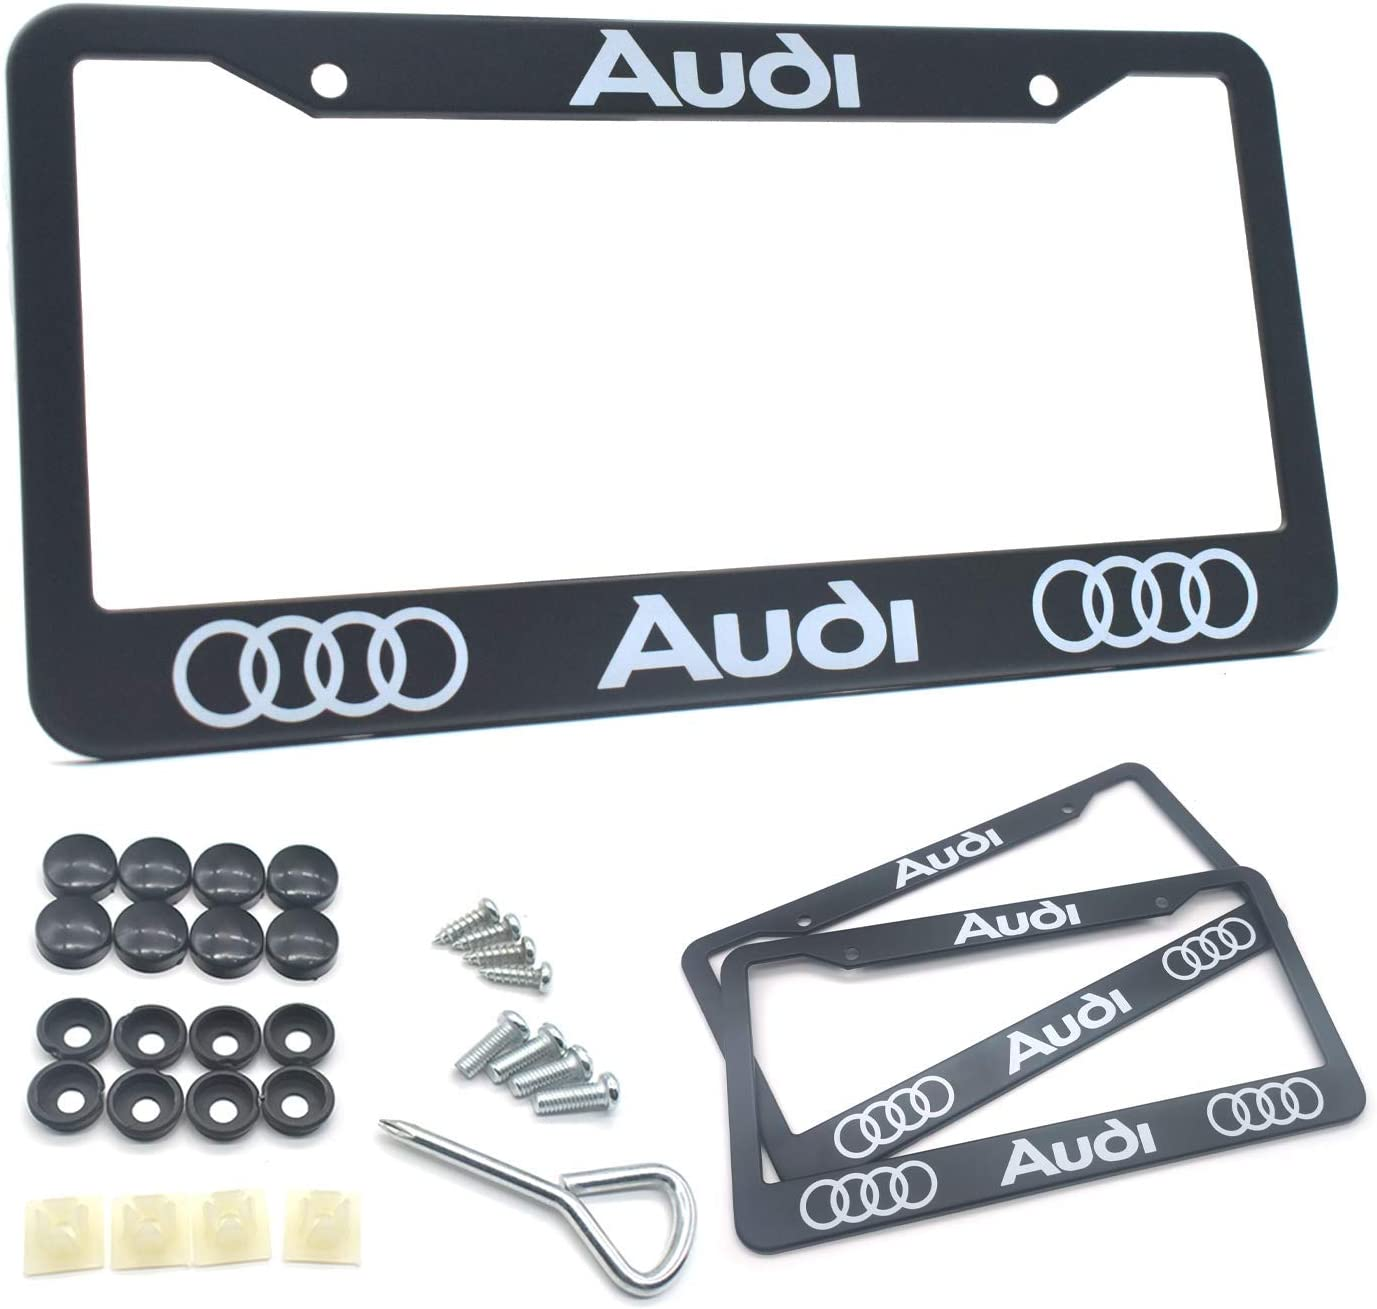 2 Pack License Plate Frames for Audi Stainless Steel Front and Back Bumper Car Plate Tag Bracket Holders with Secure Screws Fit for Audi S Line S3 S4 S5 S6 S7 S8 A1 A3 A4 A5 A6 A7 A8 Q3 Q5 Q7 R8 TT